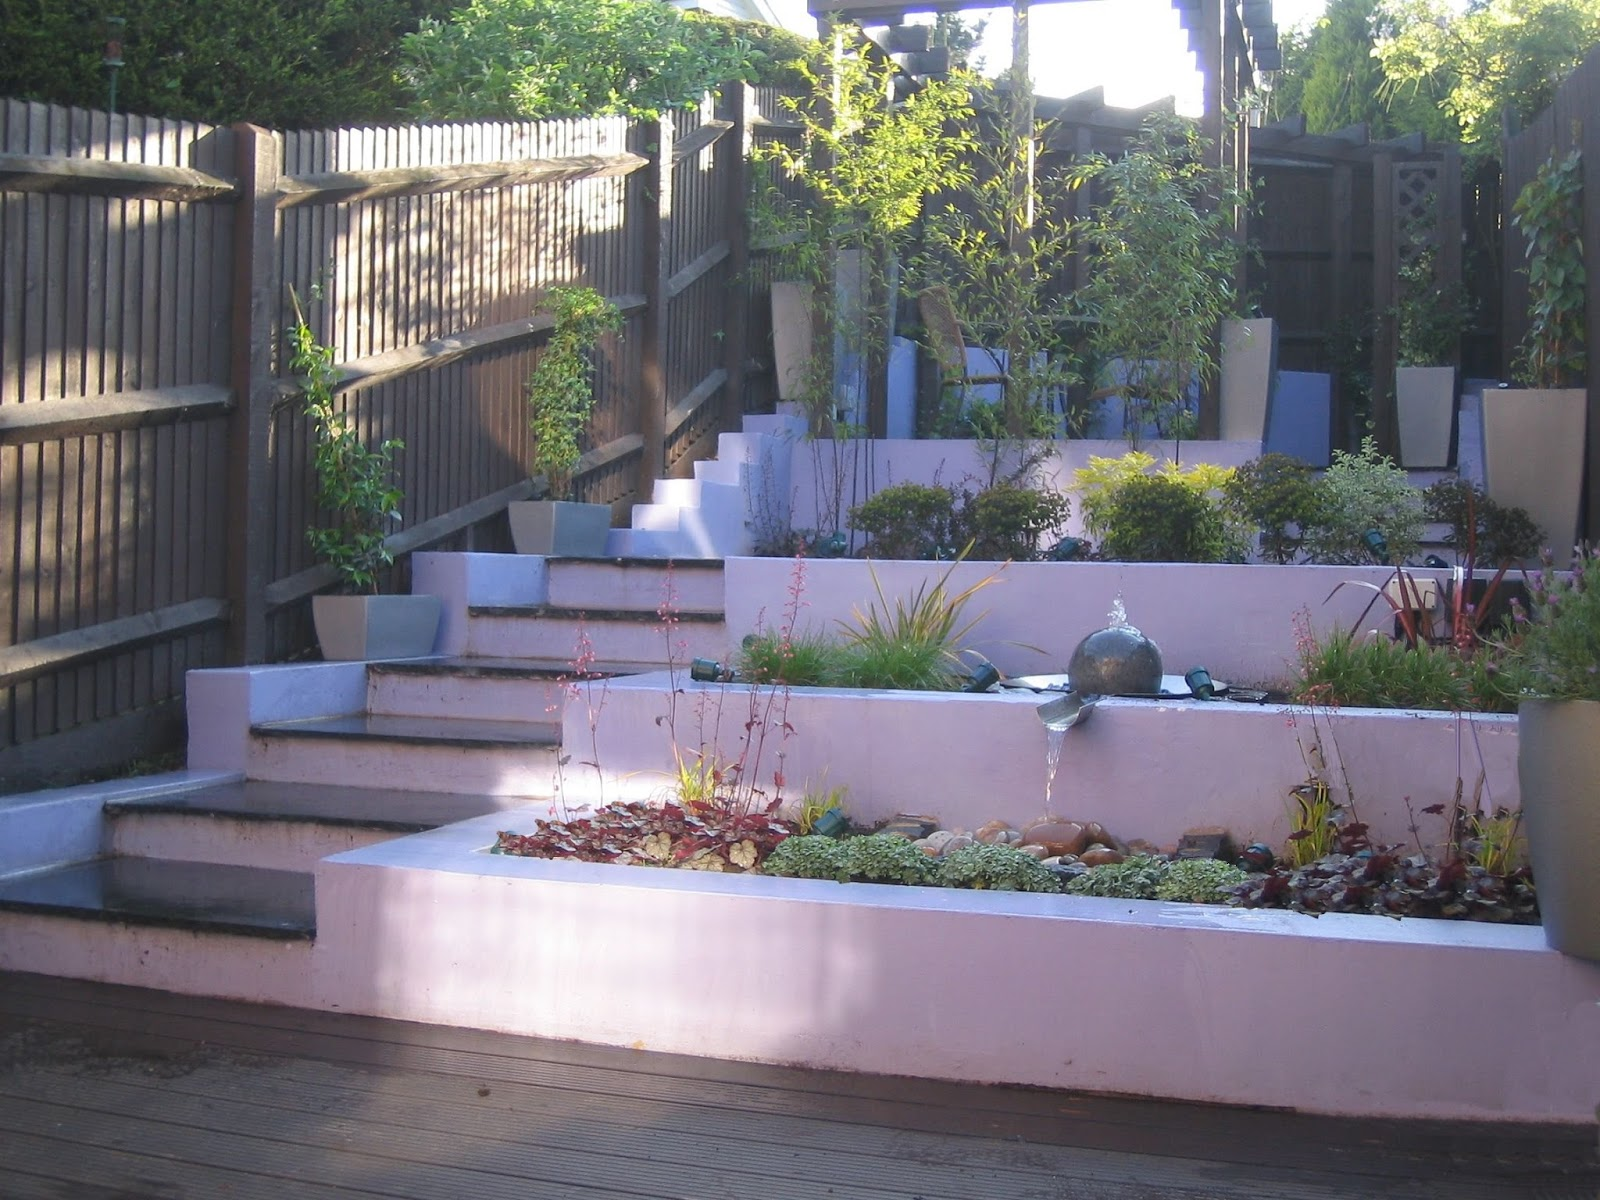 A Life Designing: Sloping Garden Design Challenges on Downward Sloping Garden Ideas id=76139